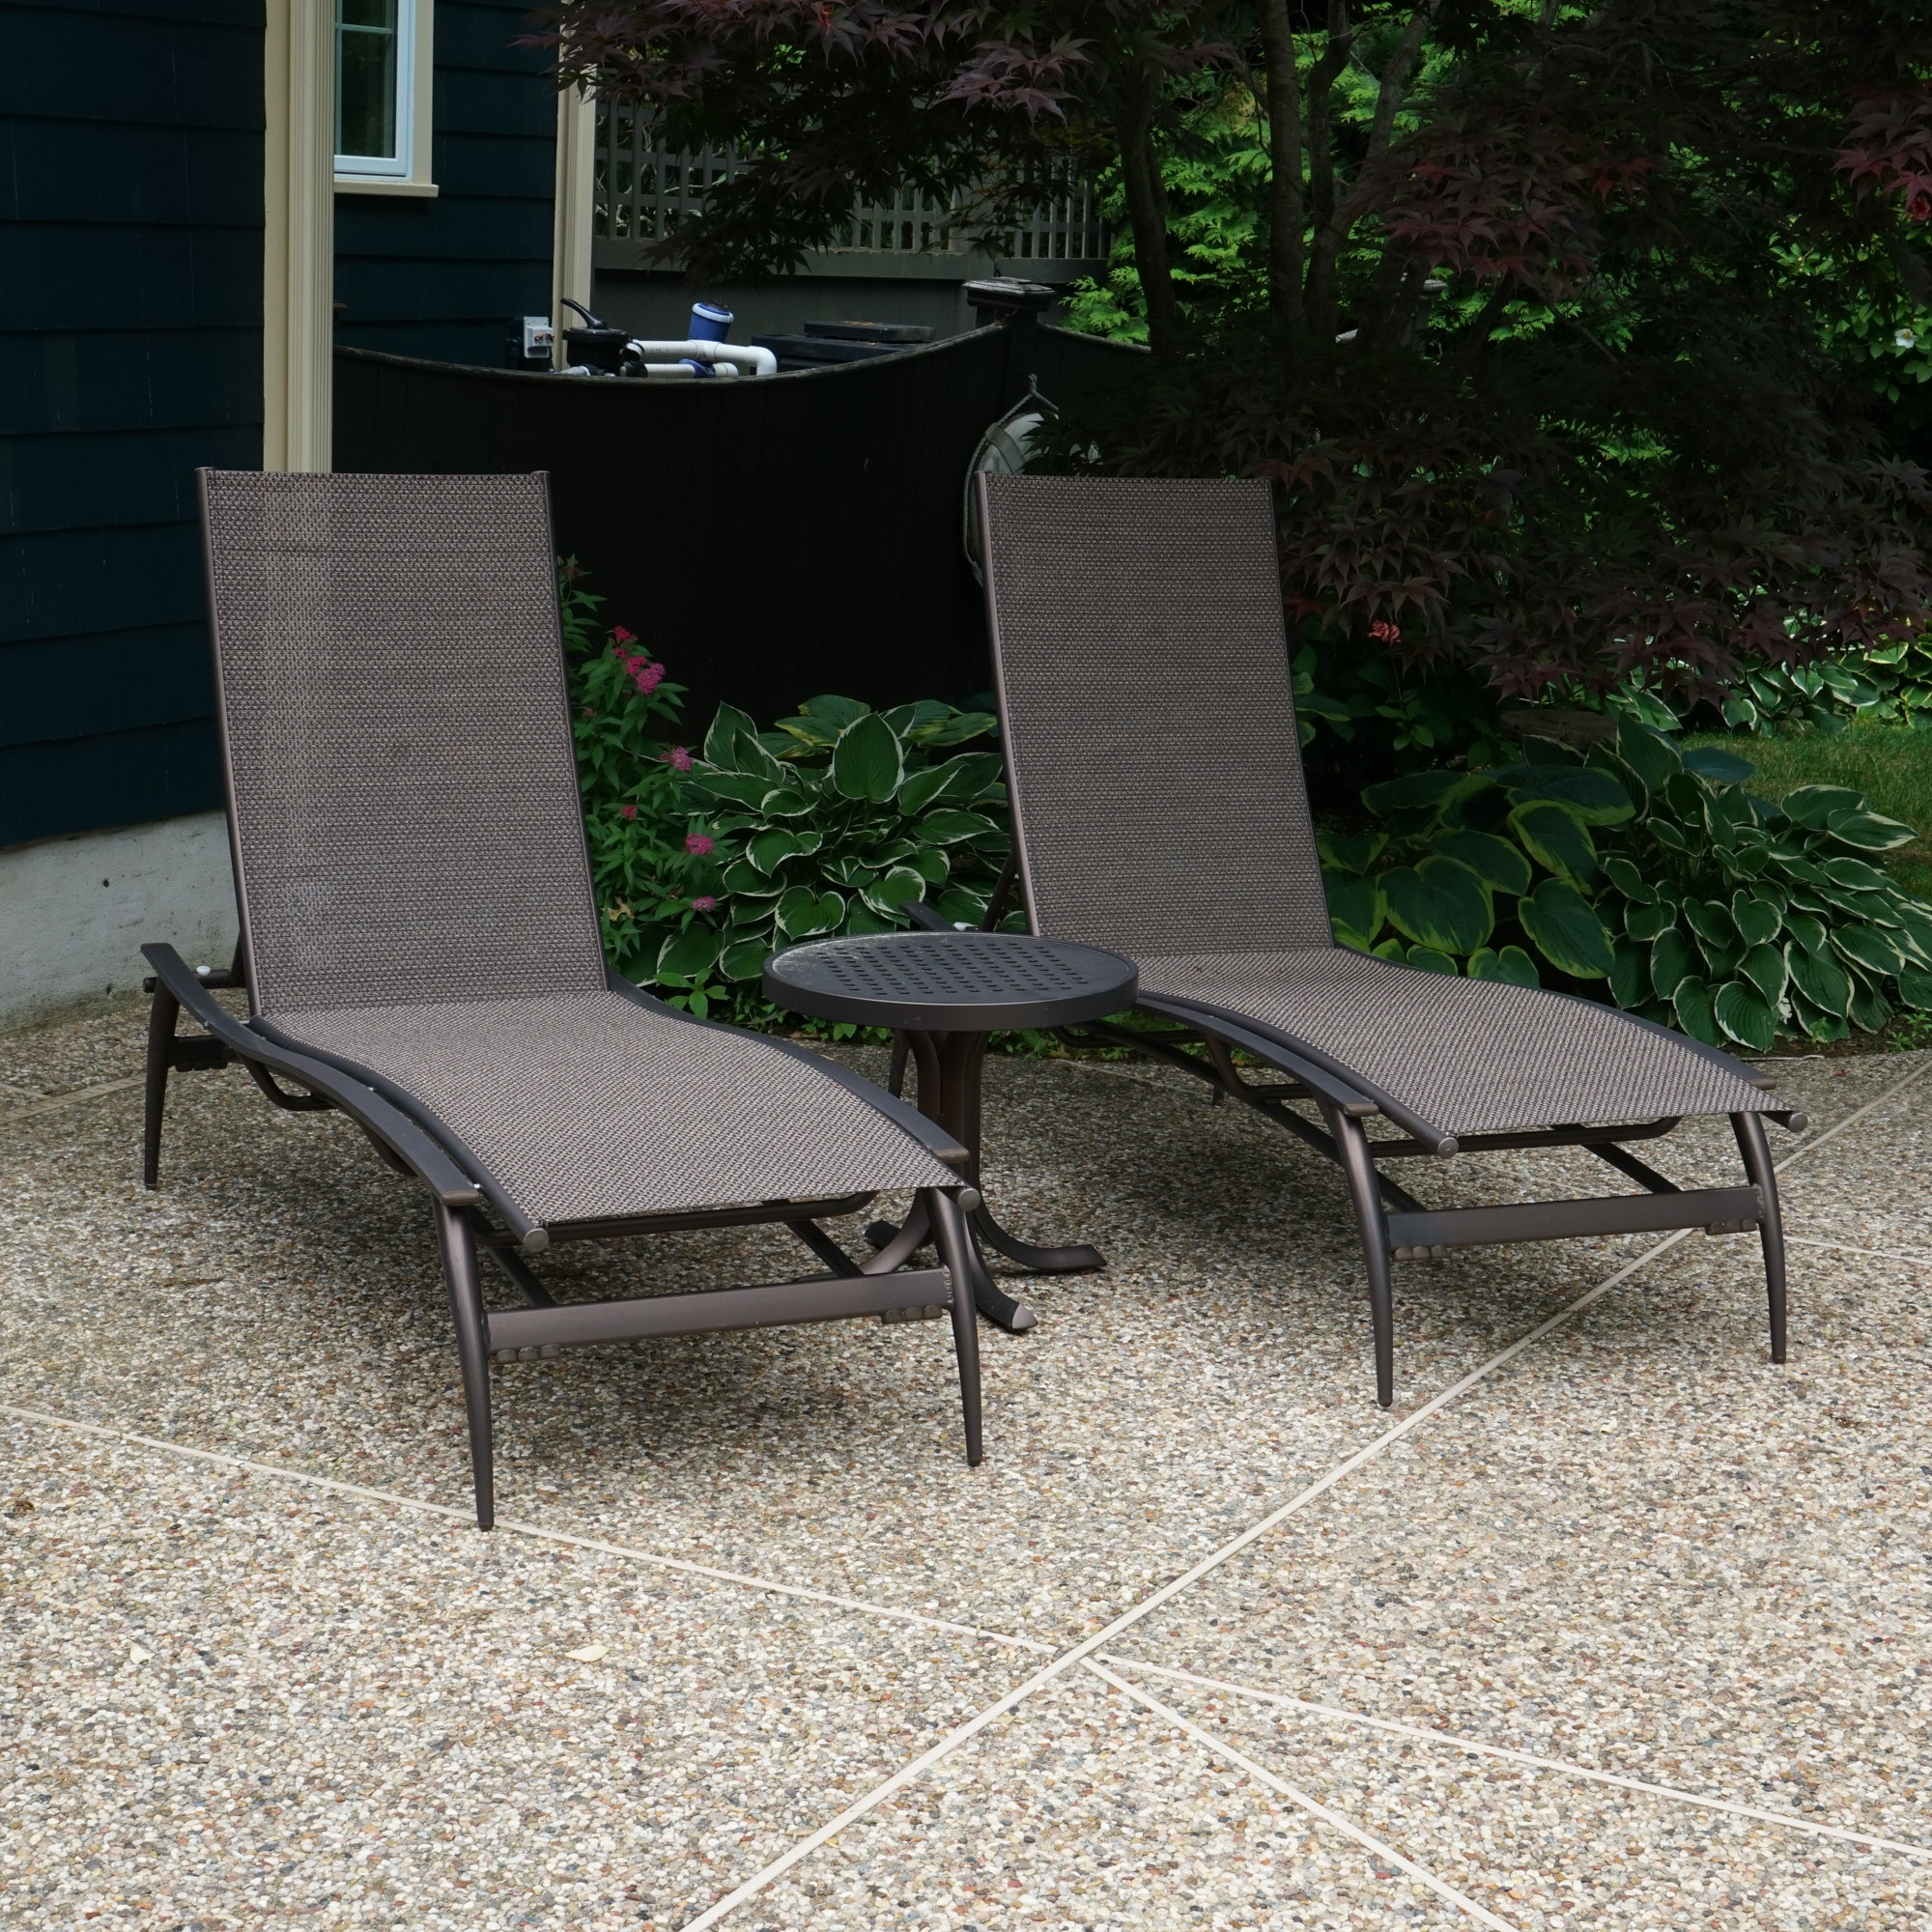 Tropitone Patio Chaise Lounges with Matching Side Table